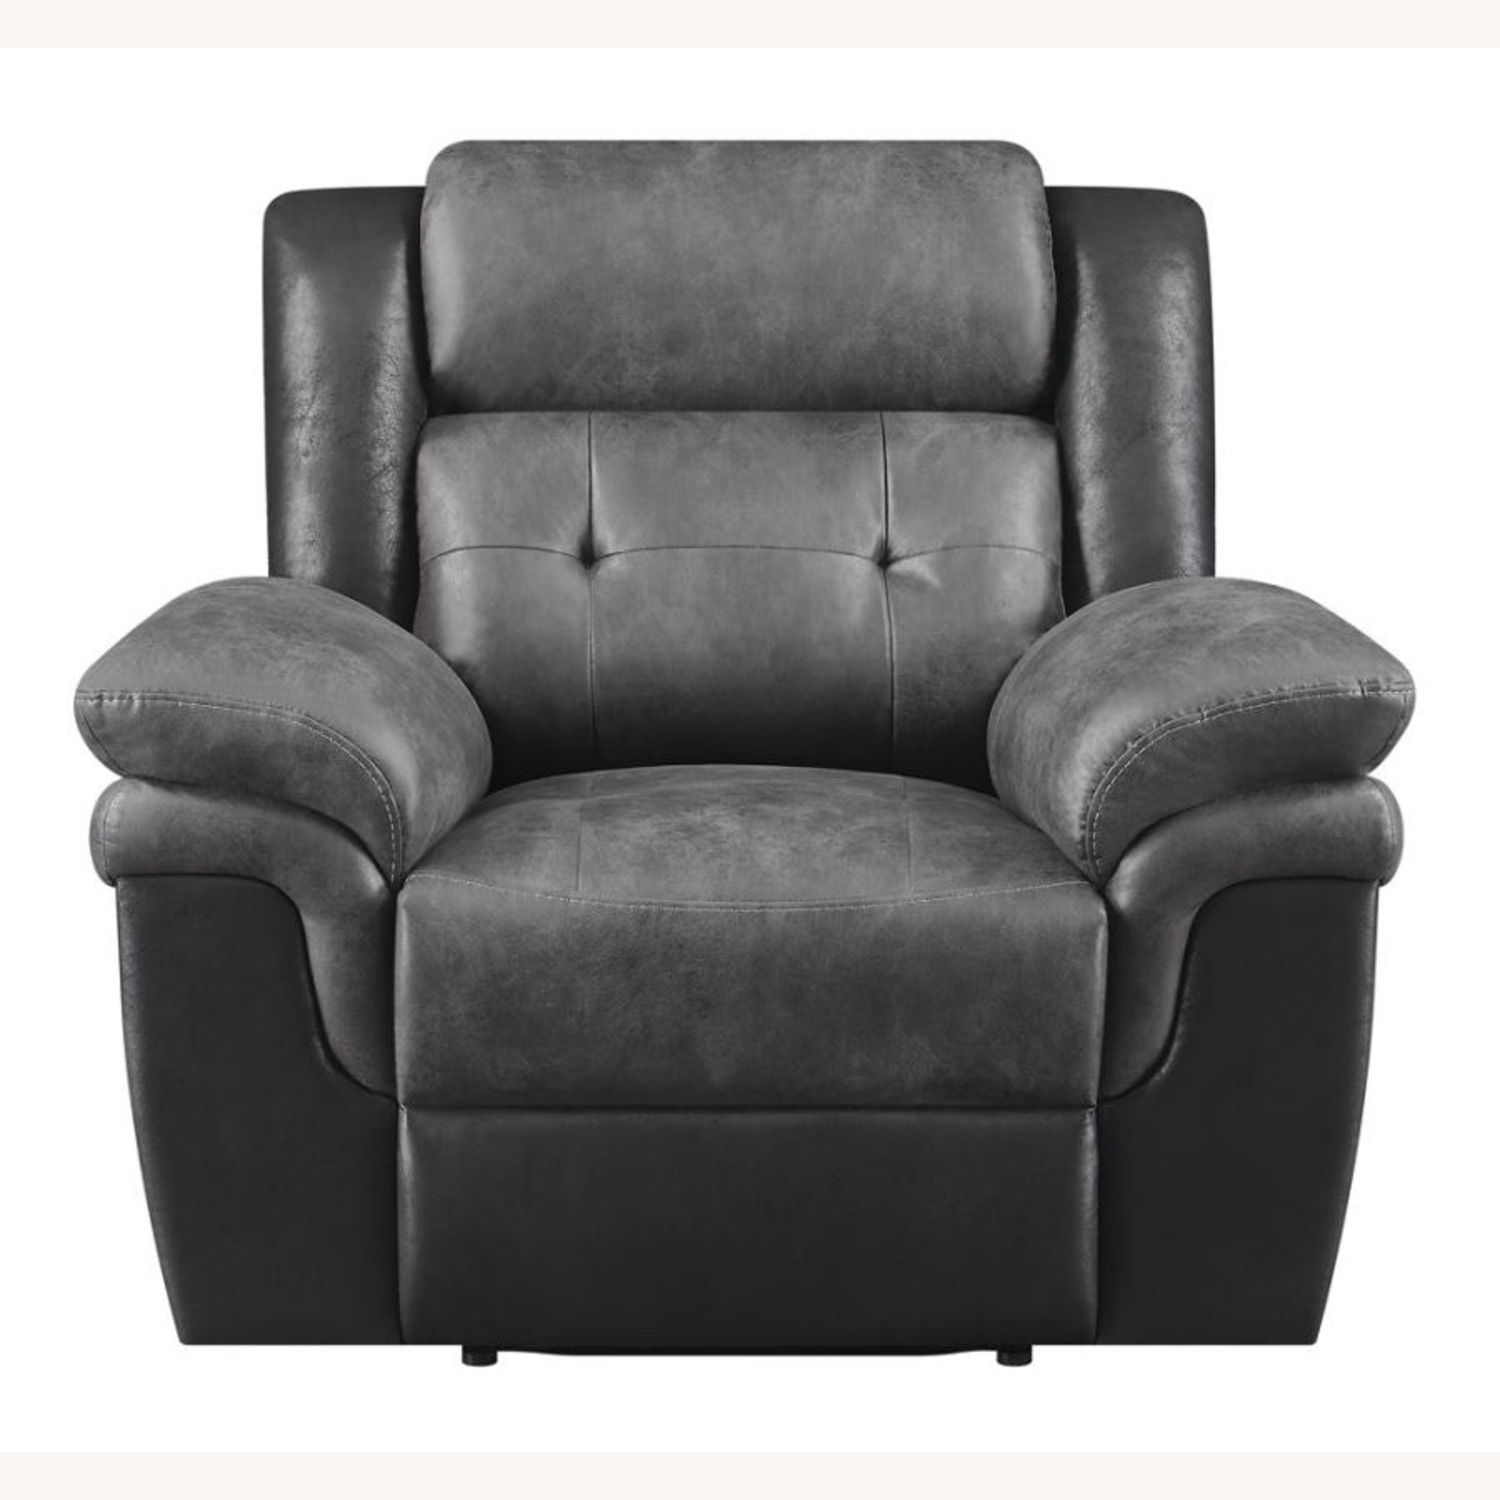 Recliner In Two-Tone Charcoal & Black Upholstery - image-2